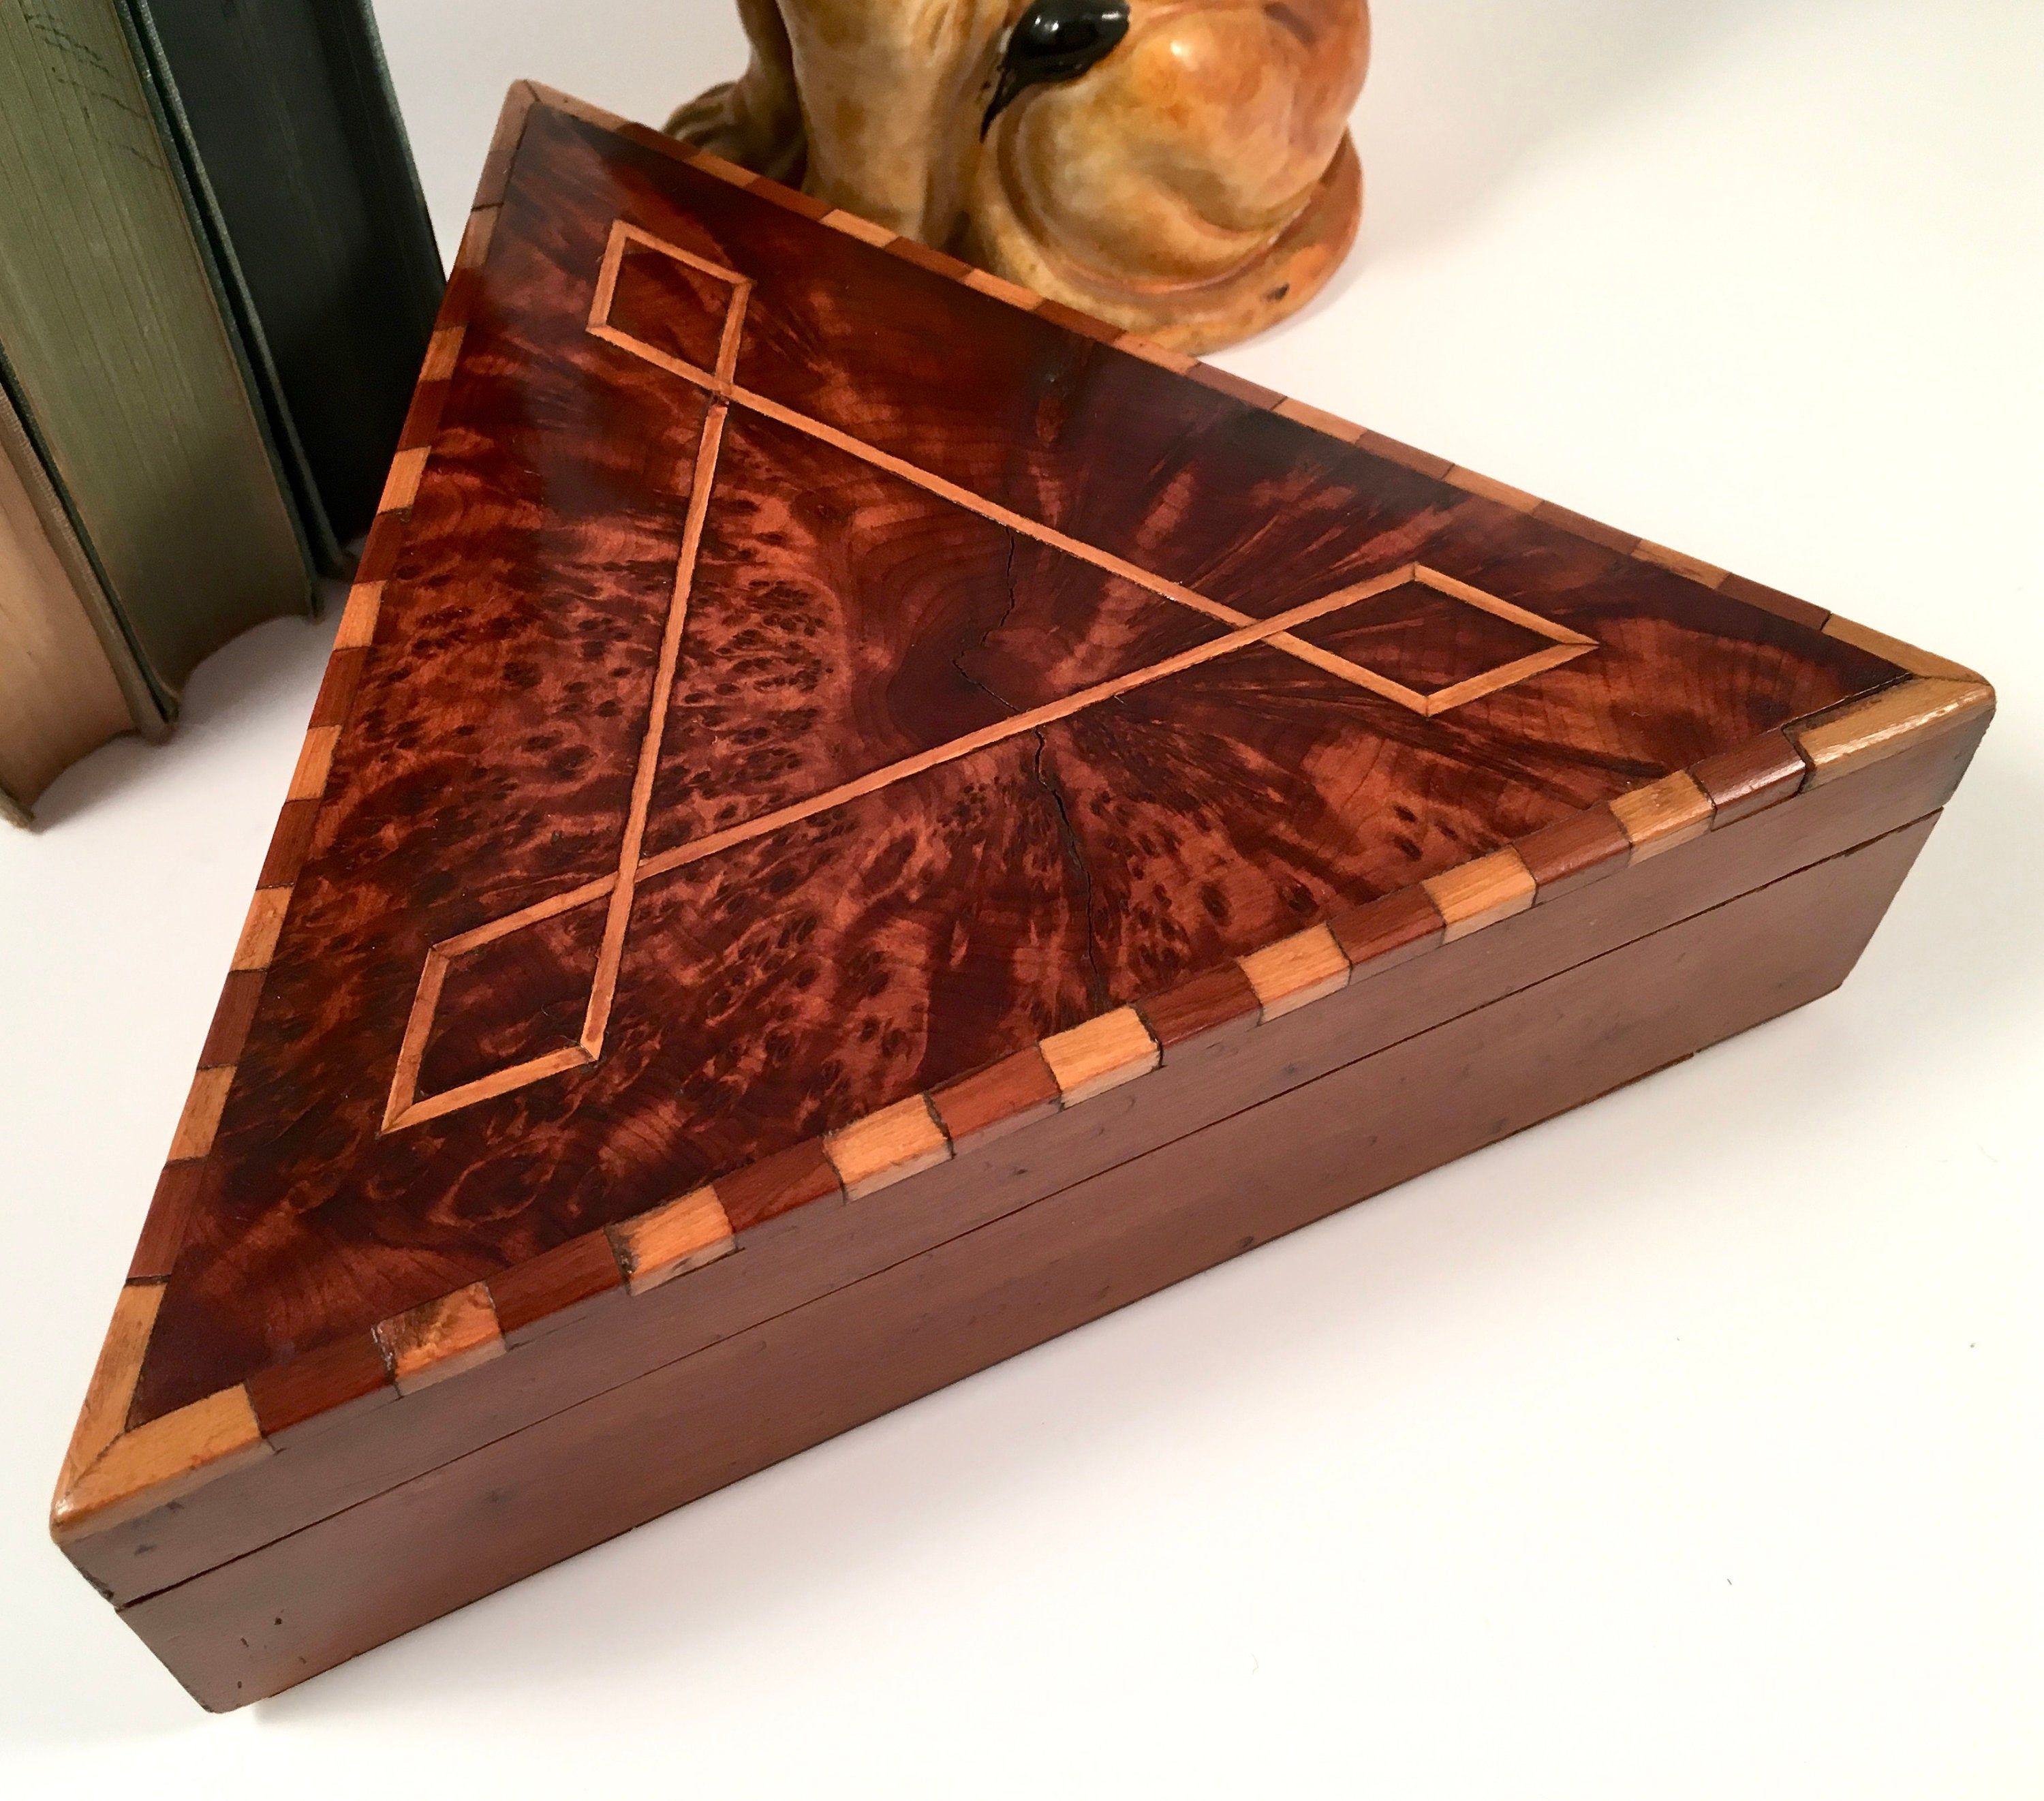 Luxe Triangular Shaped Wooden Box Burl Wood Lid Inlaid Etsy Wooden Box With Lid Wooden Boxes Decorative Wooden Boxes